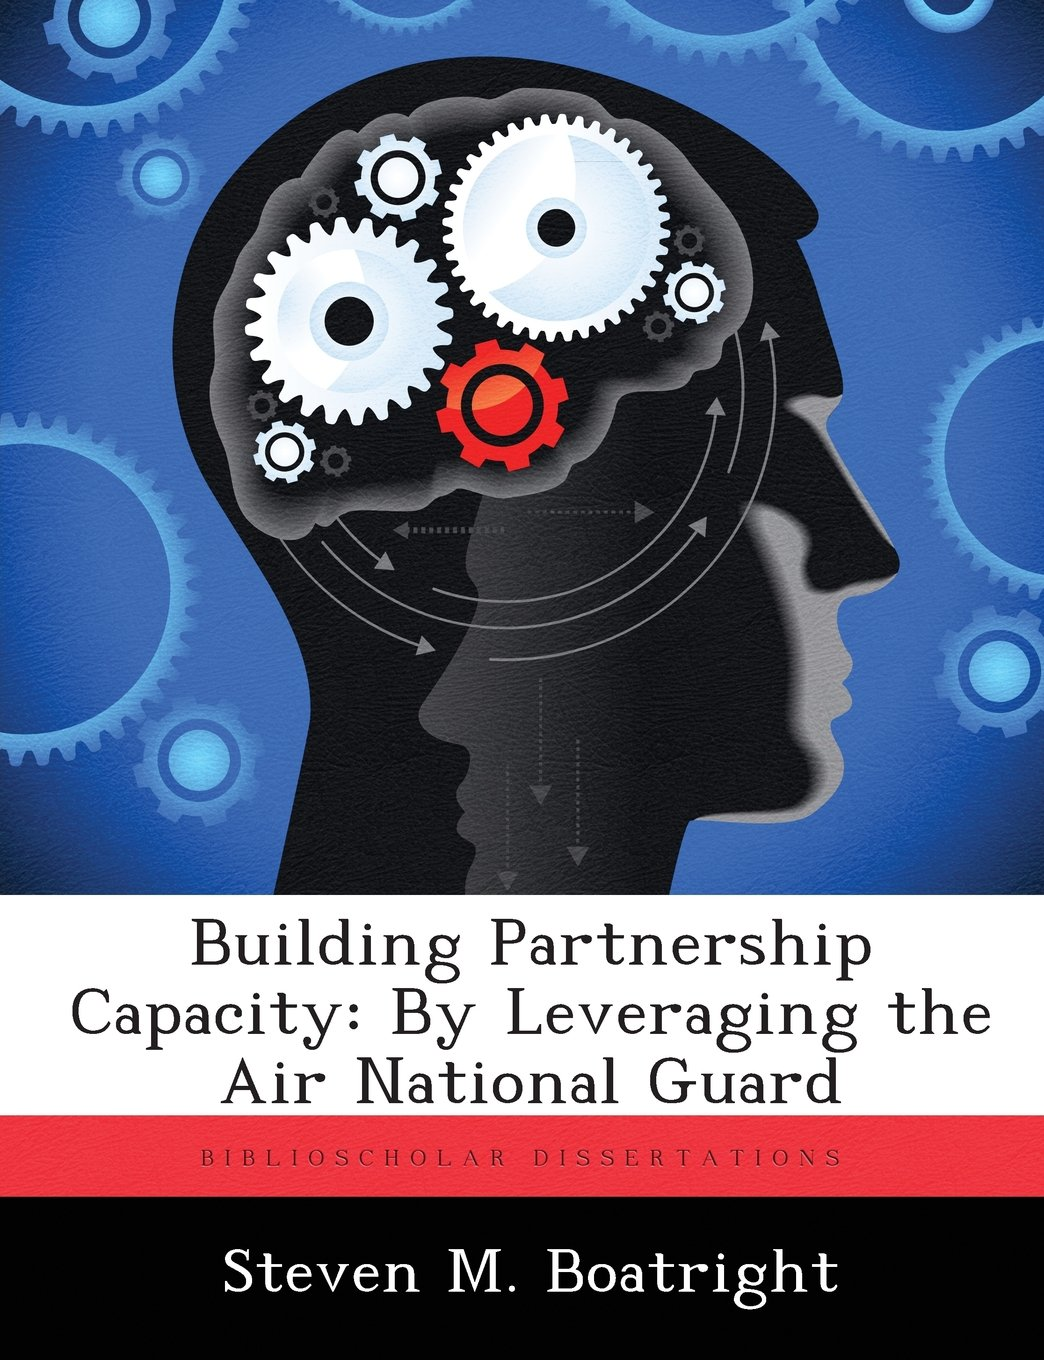 Building Partnership Capacity: By Leveraging the Air National Guard PDF